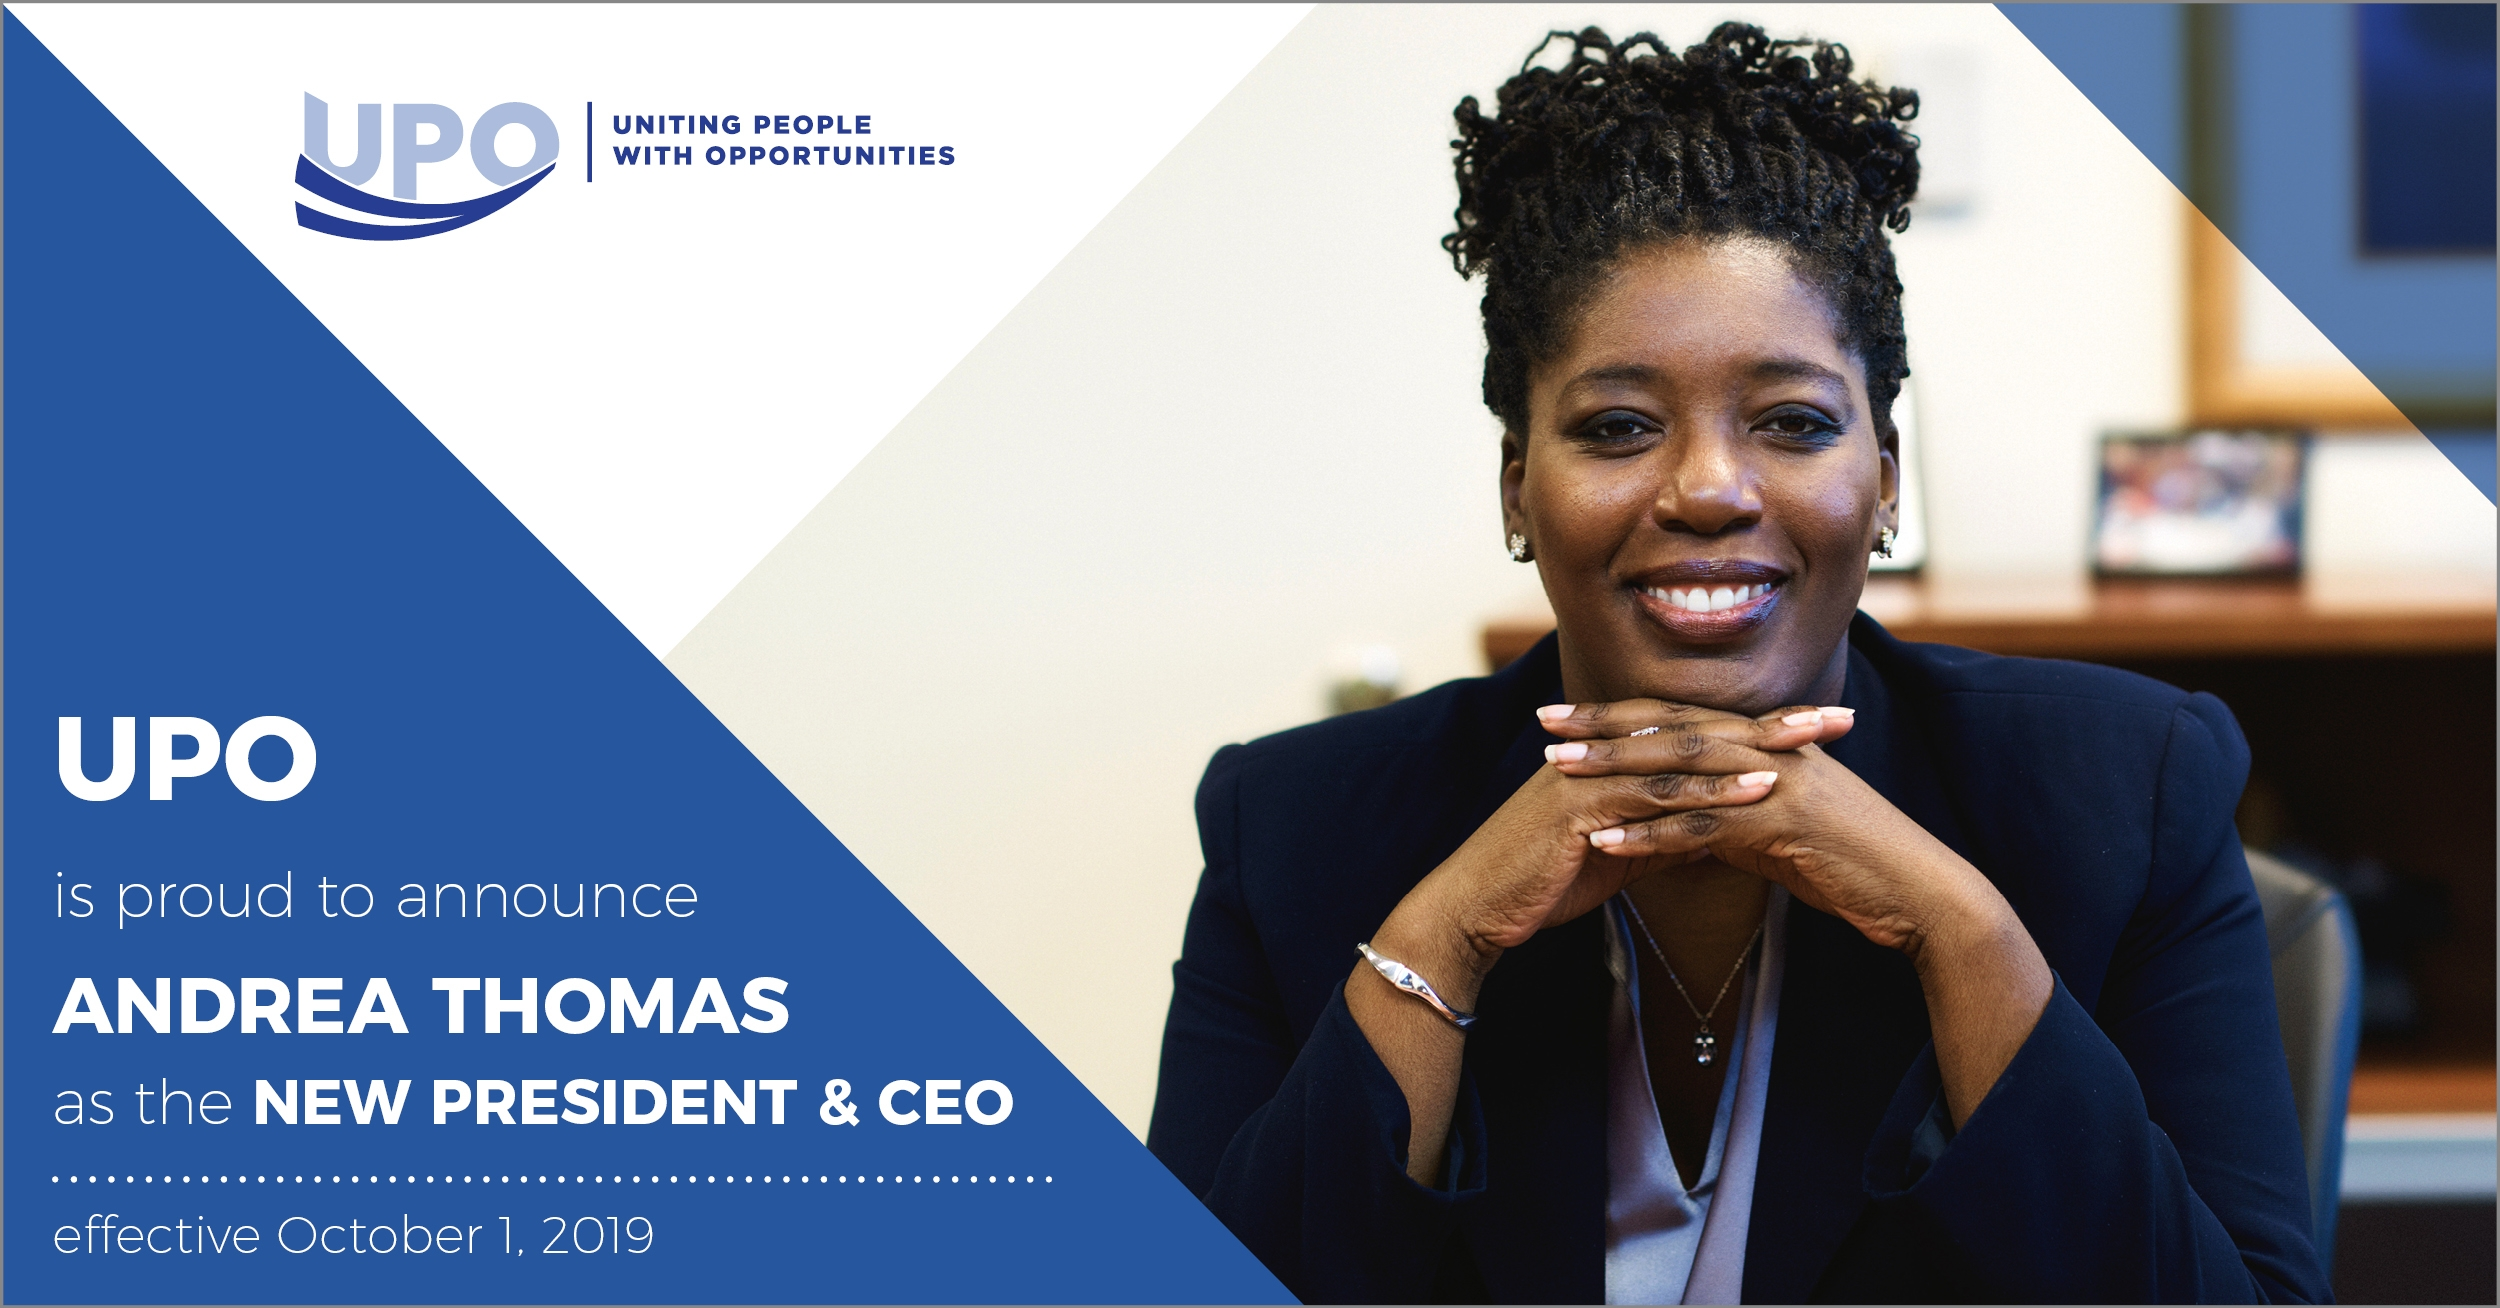 Congratulations to our new President & CEO: Andrea Thomas